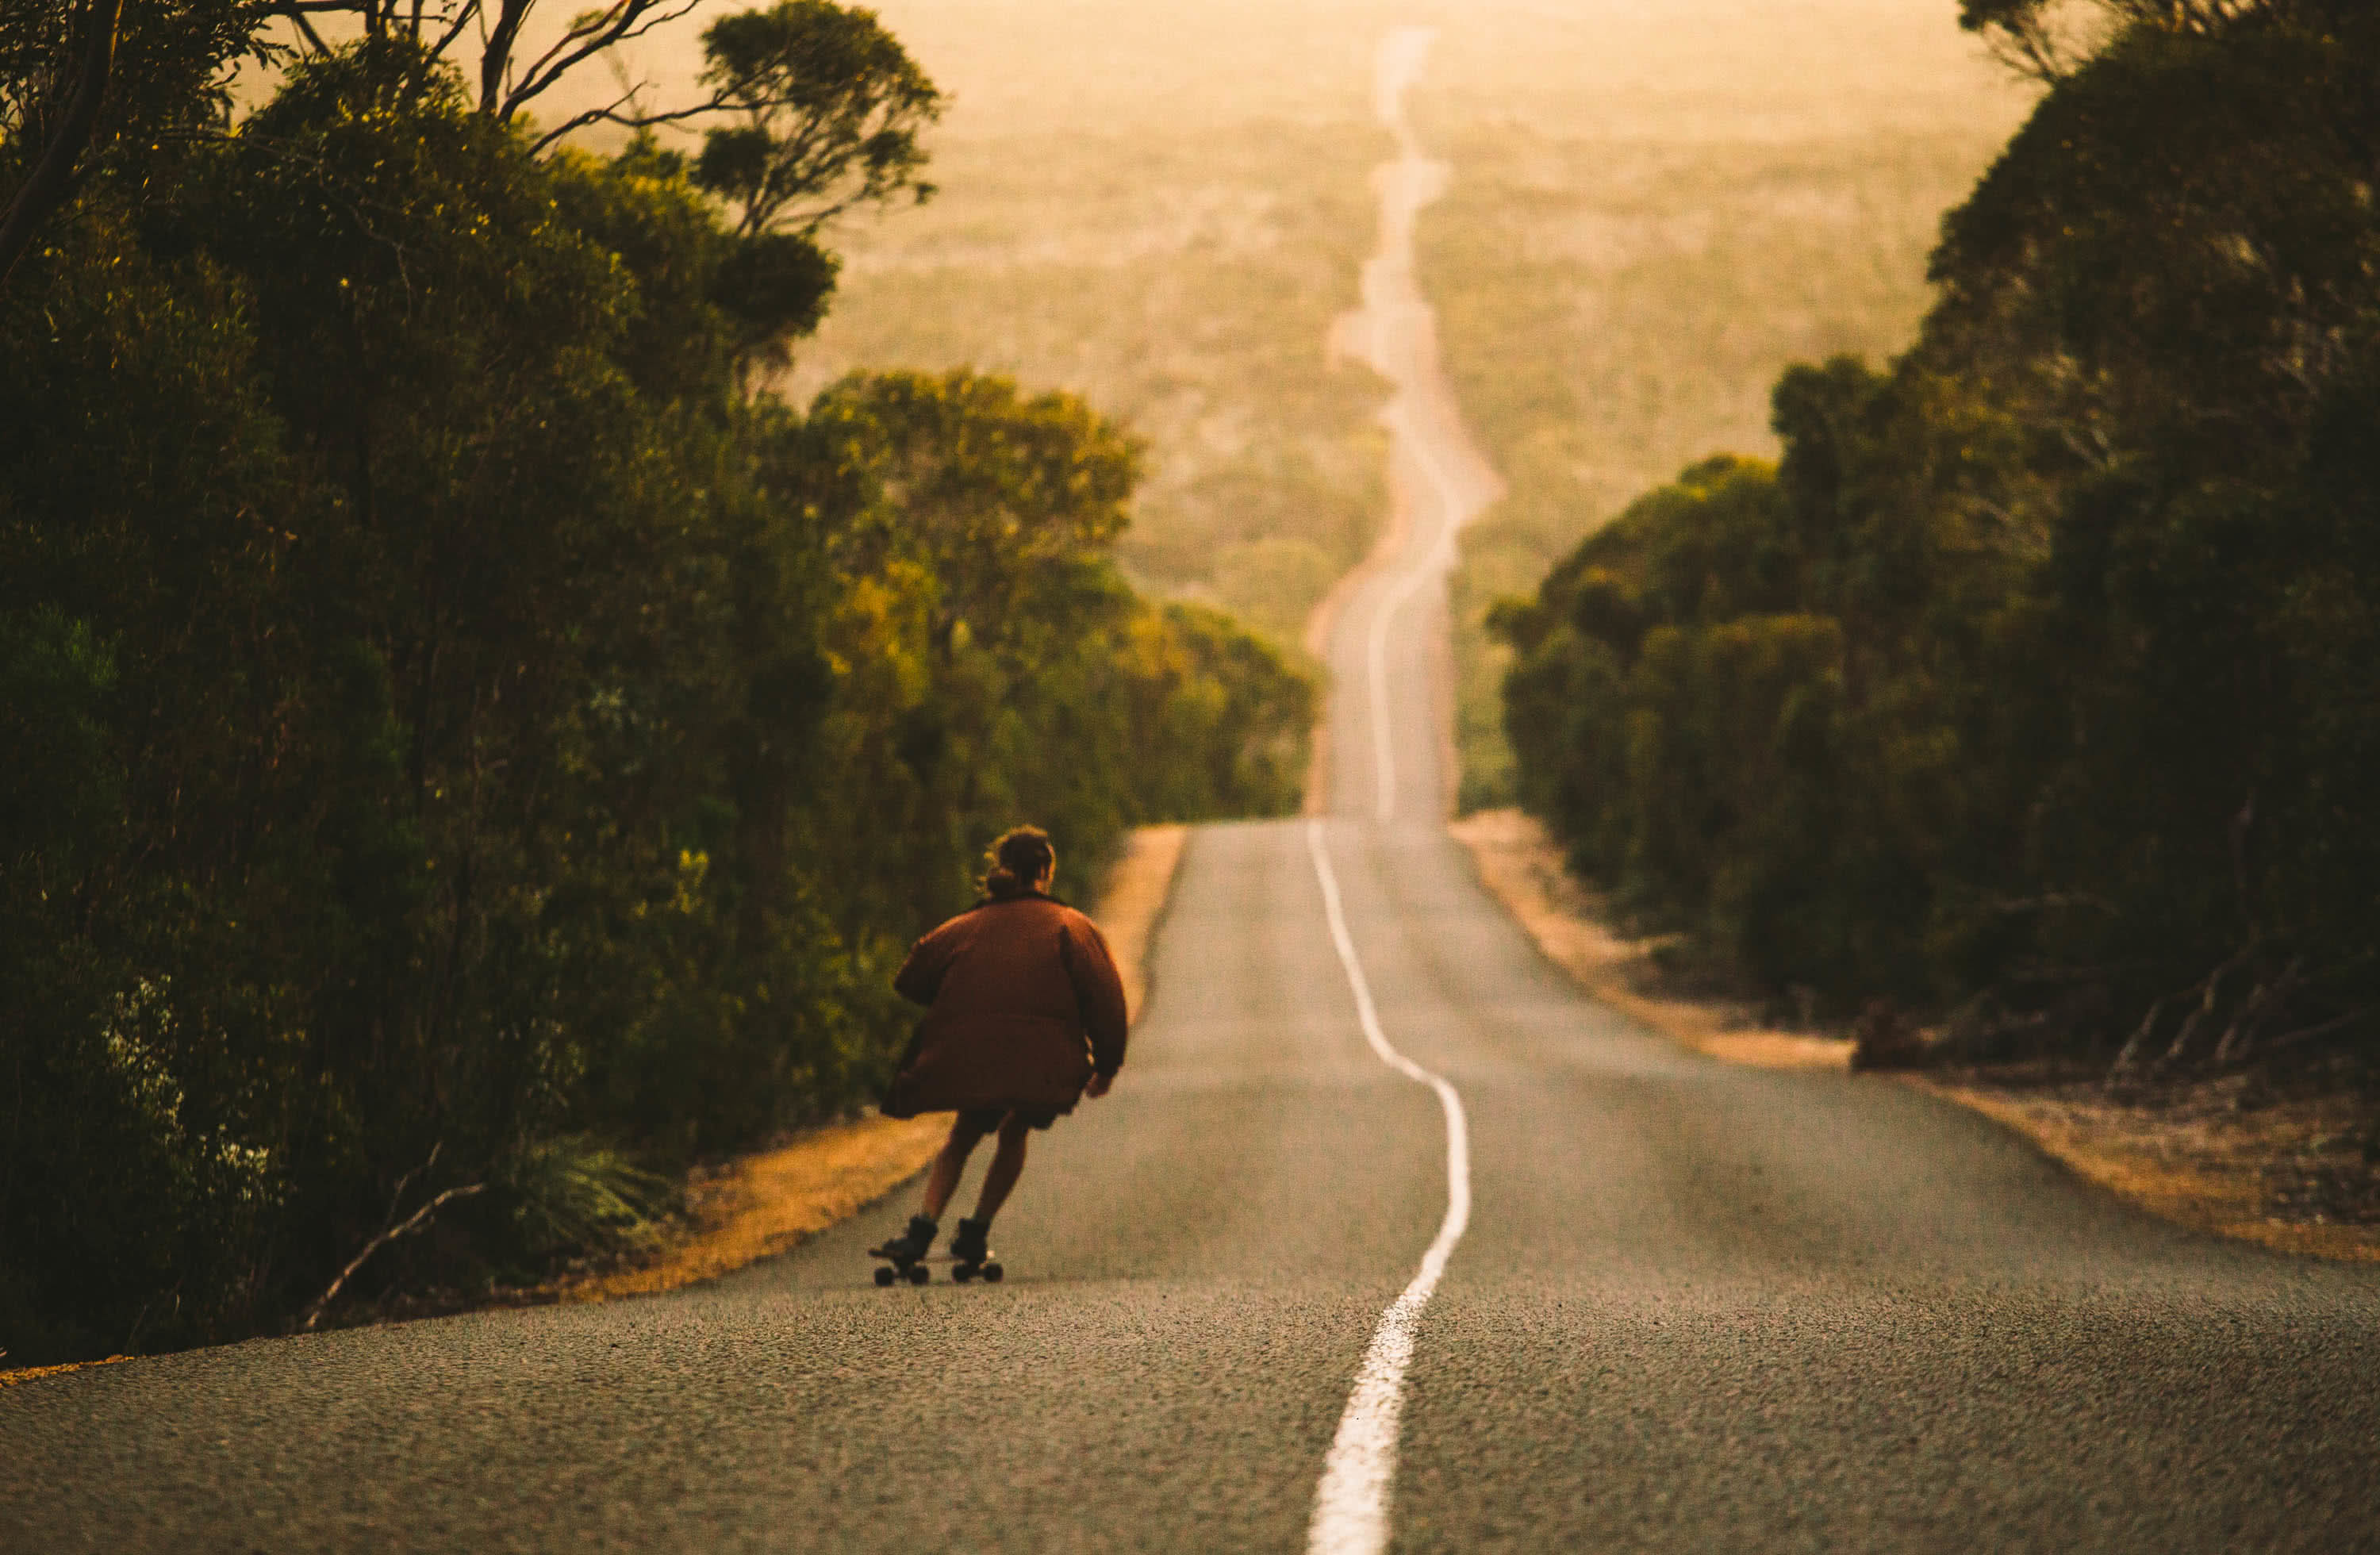 What We Learnt From 4 Years On The Road // Van Life Revisited, mitch cox, Kangaroo Island skateboard, downhill, road, distance, trees